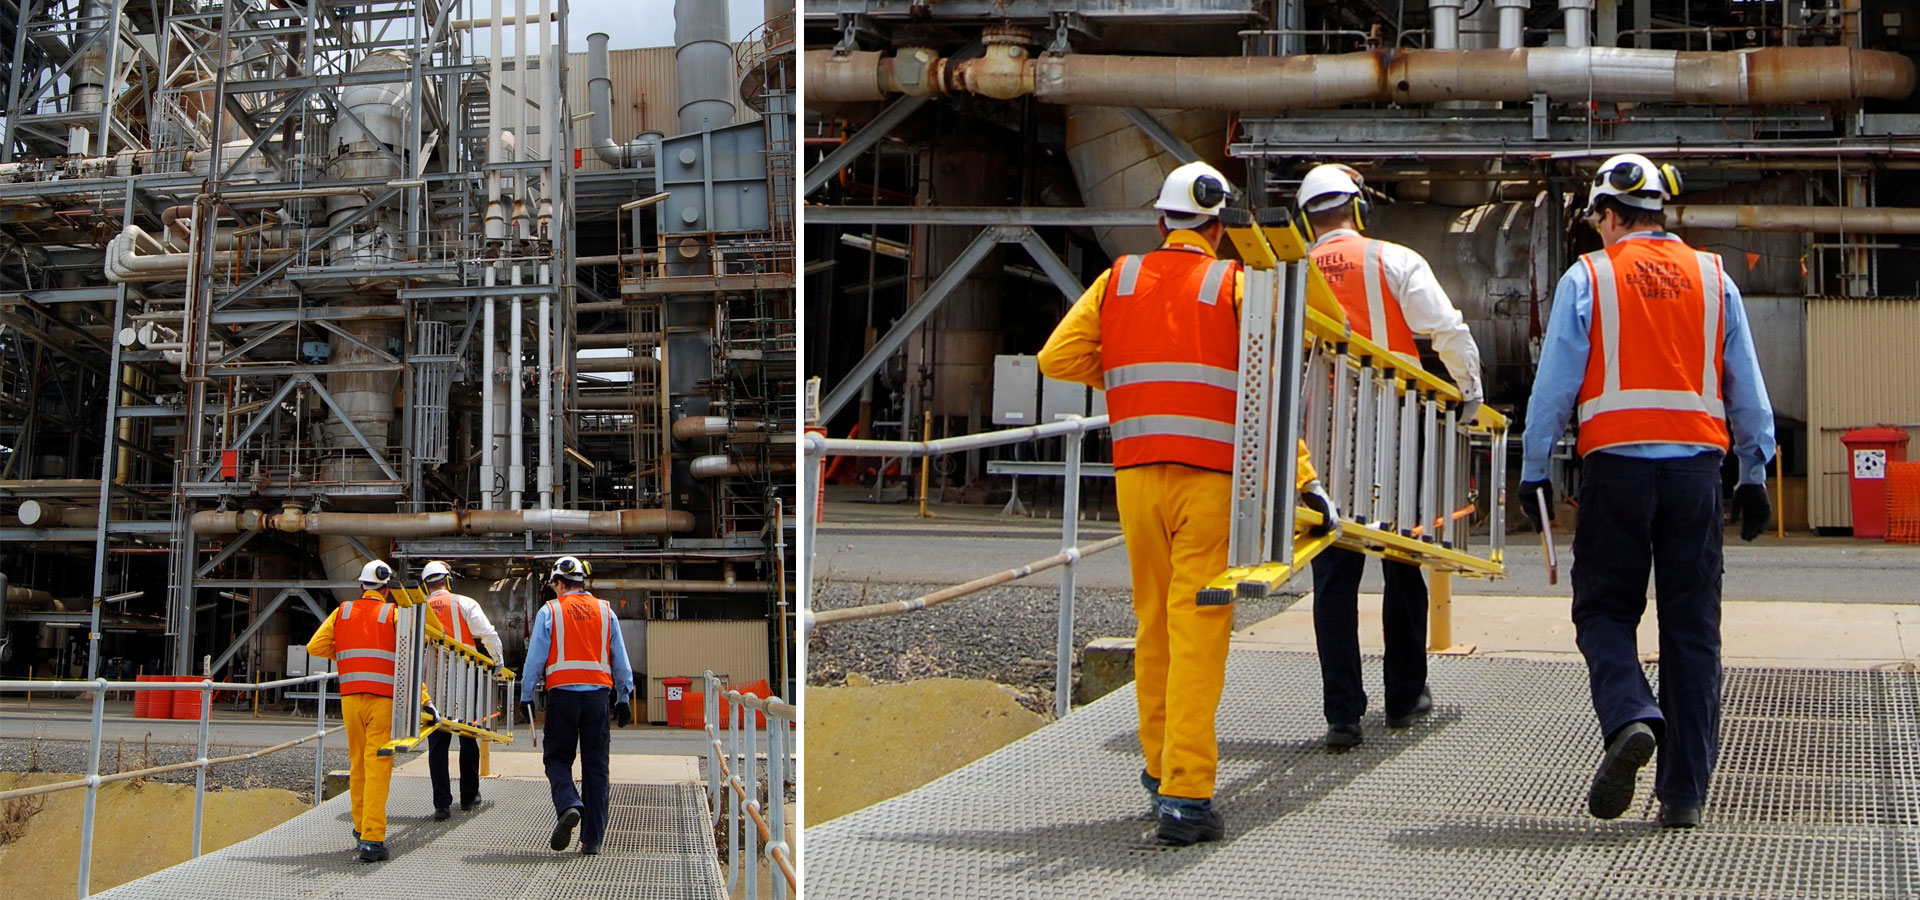 The Branach fibreglass CorrosionMaster 550mm Step Platform Ladder being carried through a Shell oil refinery.